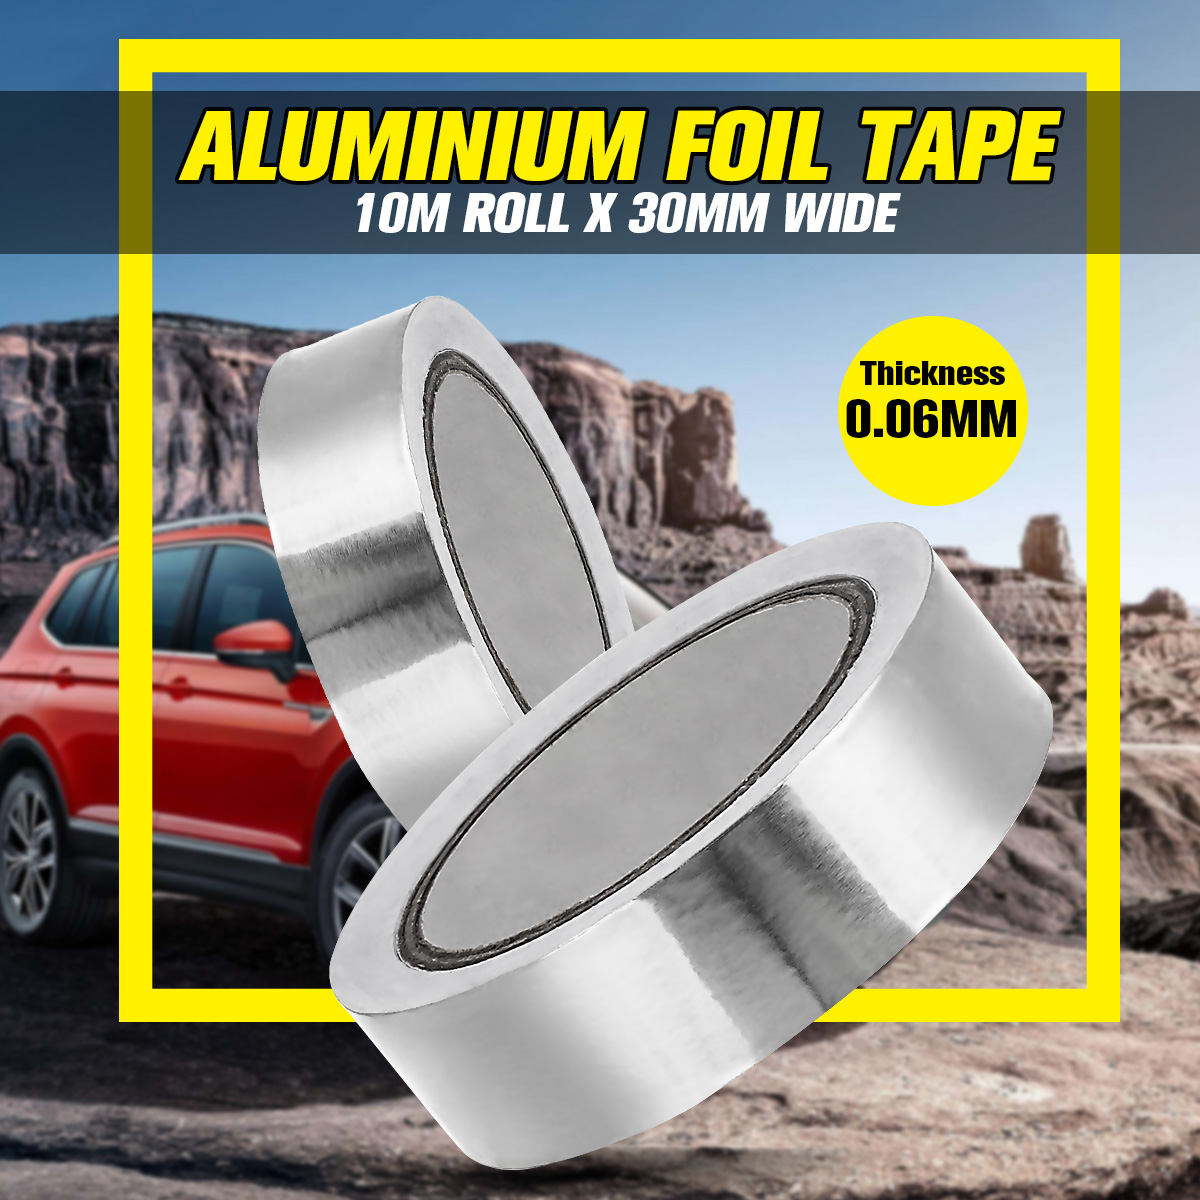 New Chrome Adhesive Car Aluminium Foil Tape Stripe Roll  3cm X 20m With Temperature Stability